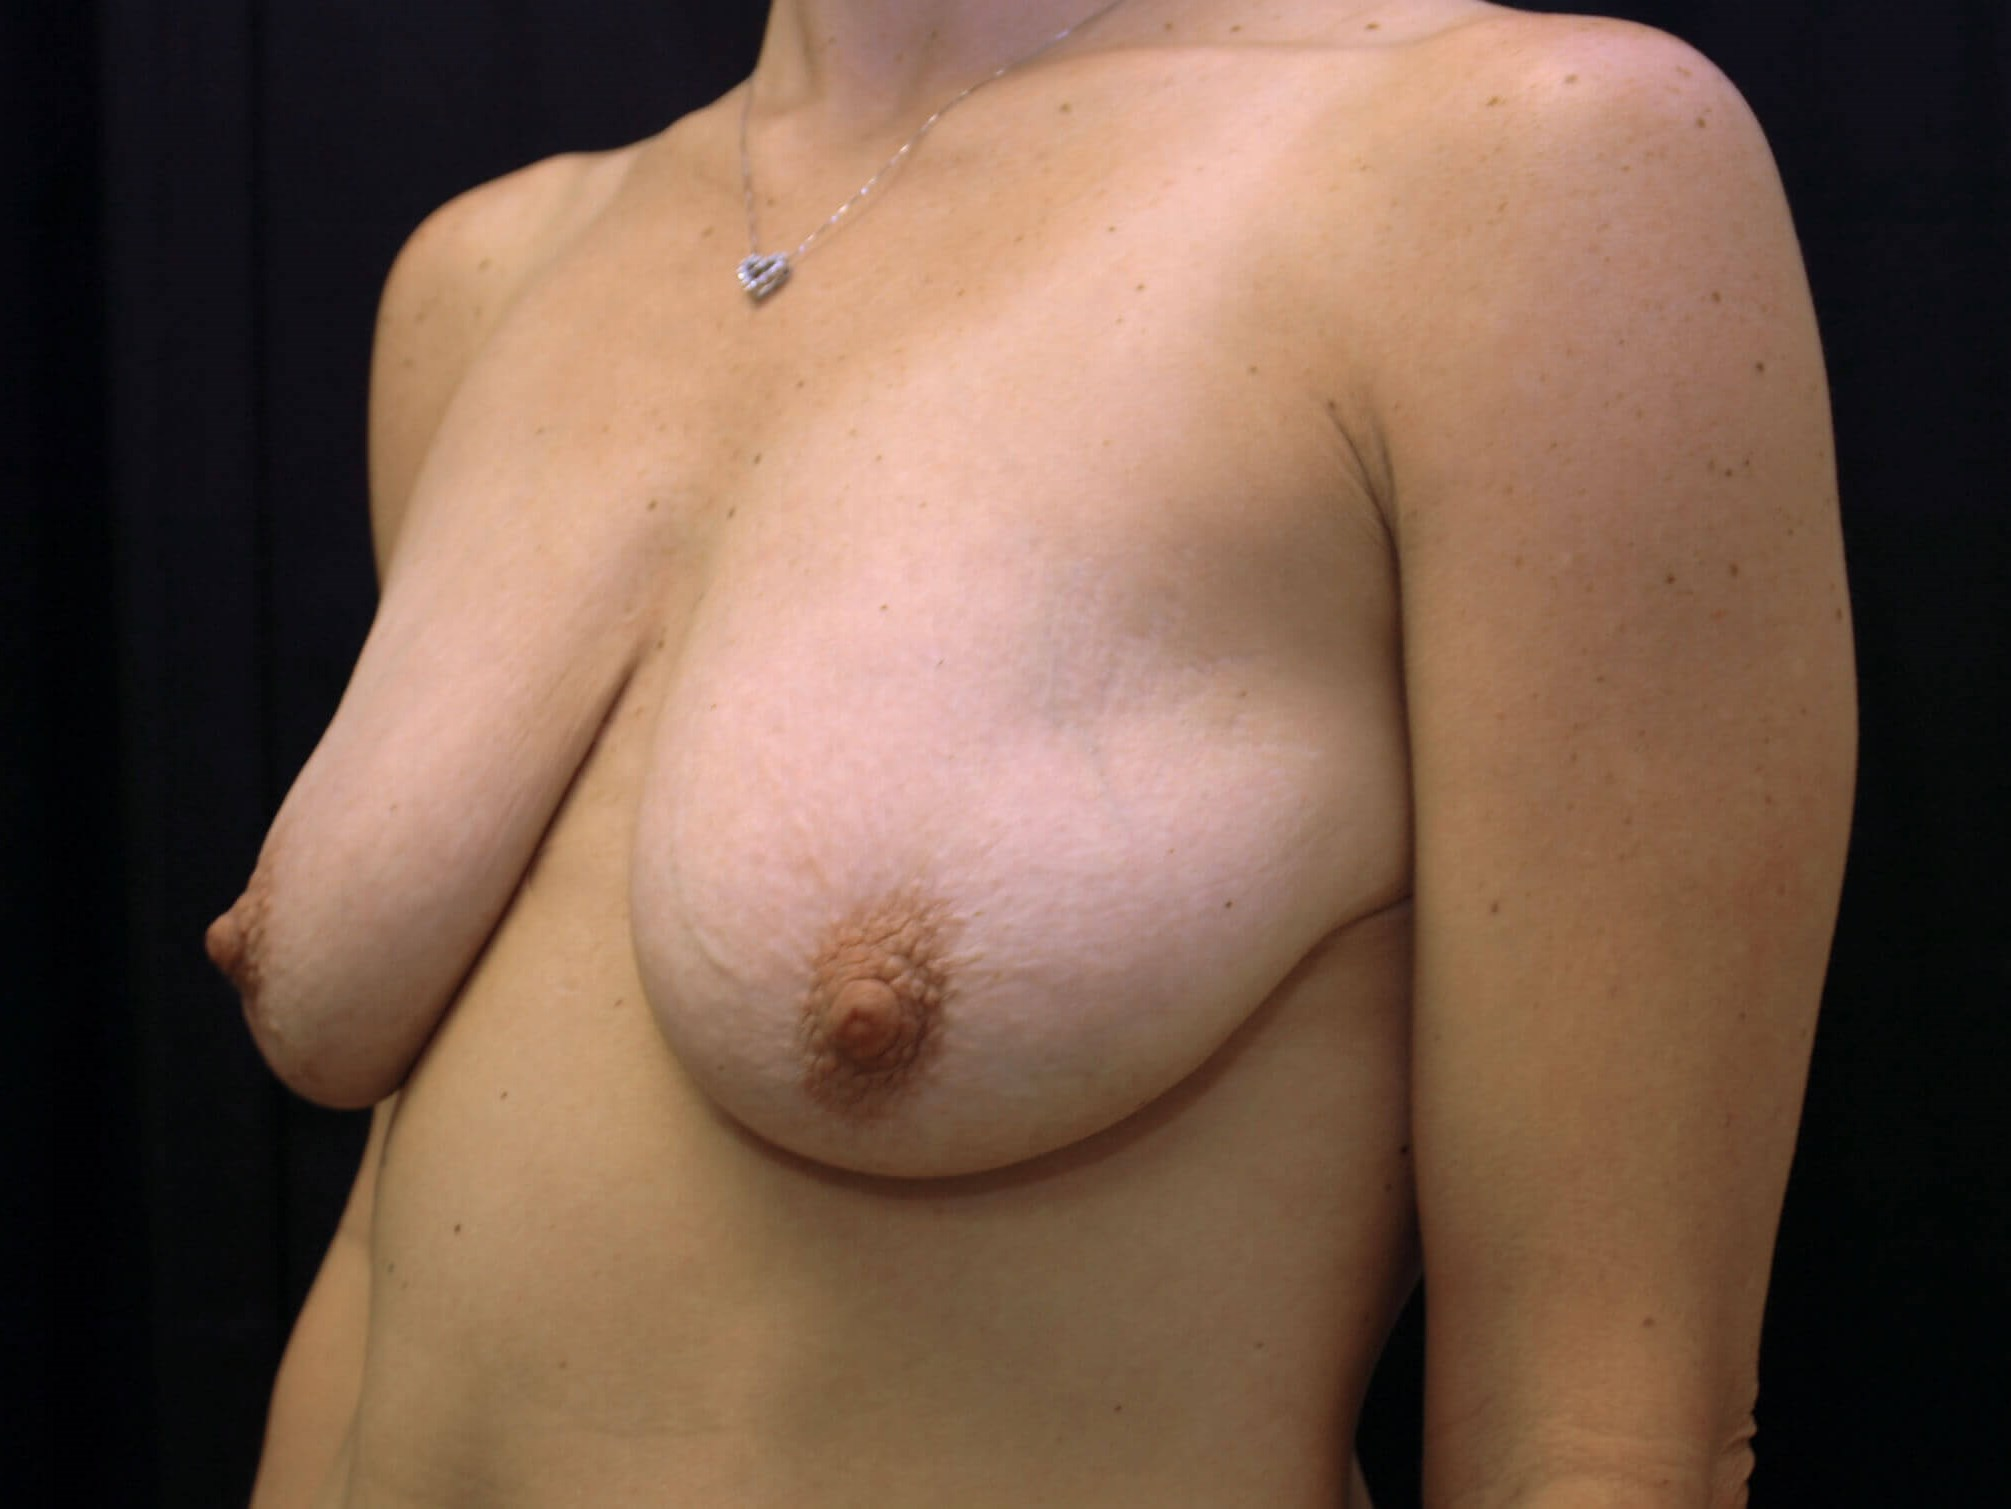 DALLAS, TEXAS WOMAN HAS BREAST AUGMENTATION AND VERTICAL BREAST LIFT SURGERY